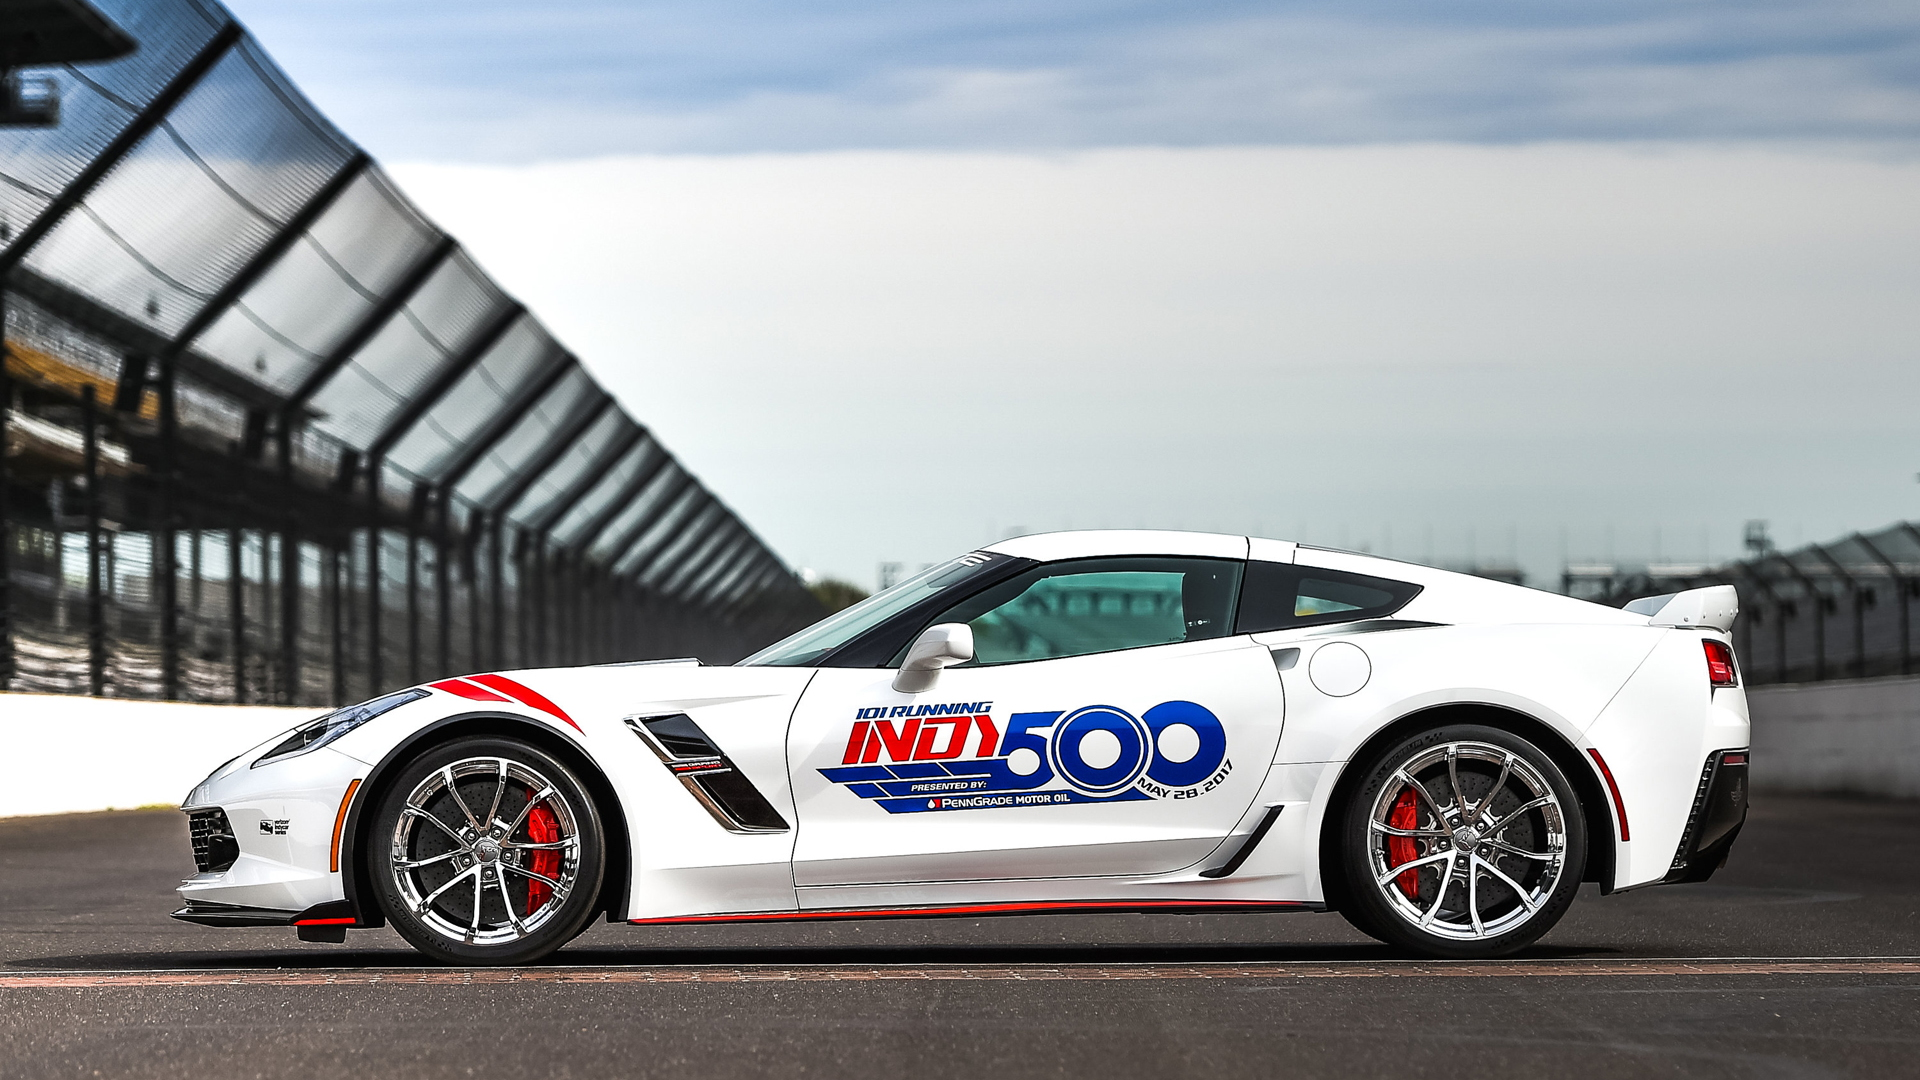 2017 Chevrolet Corvette Grand Sport Indy 500 Pace Car